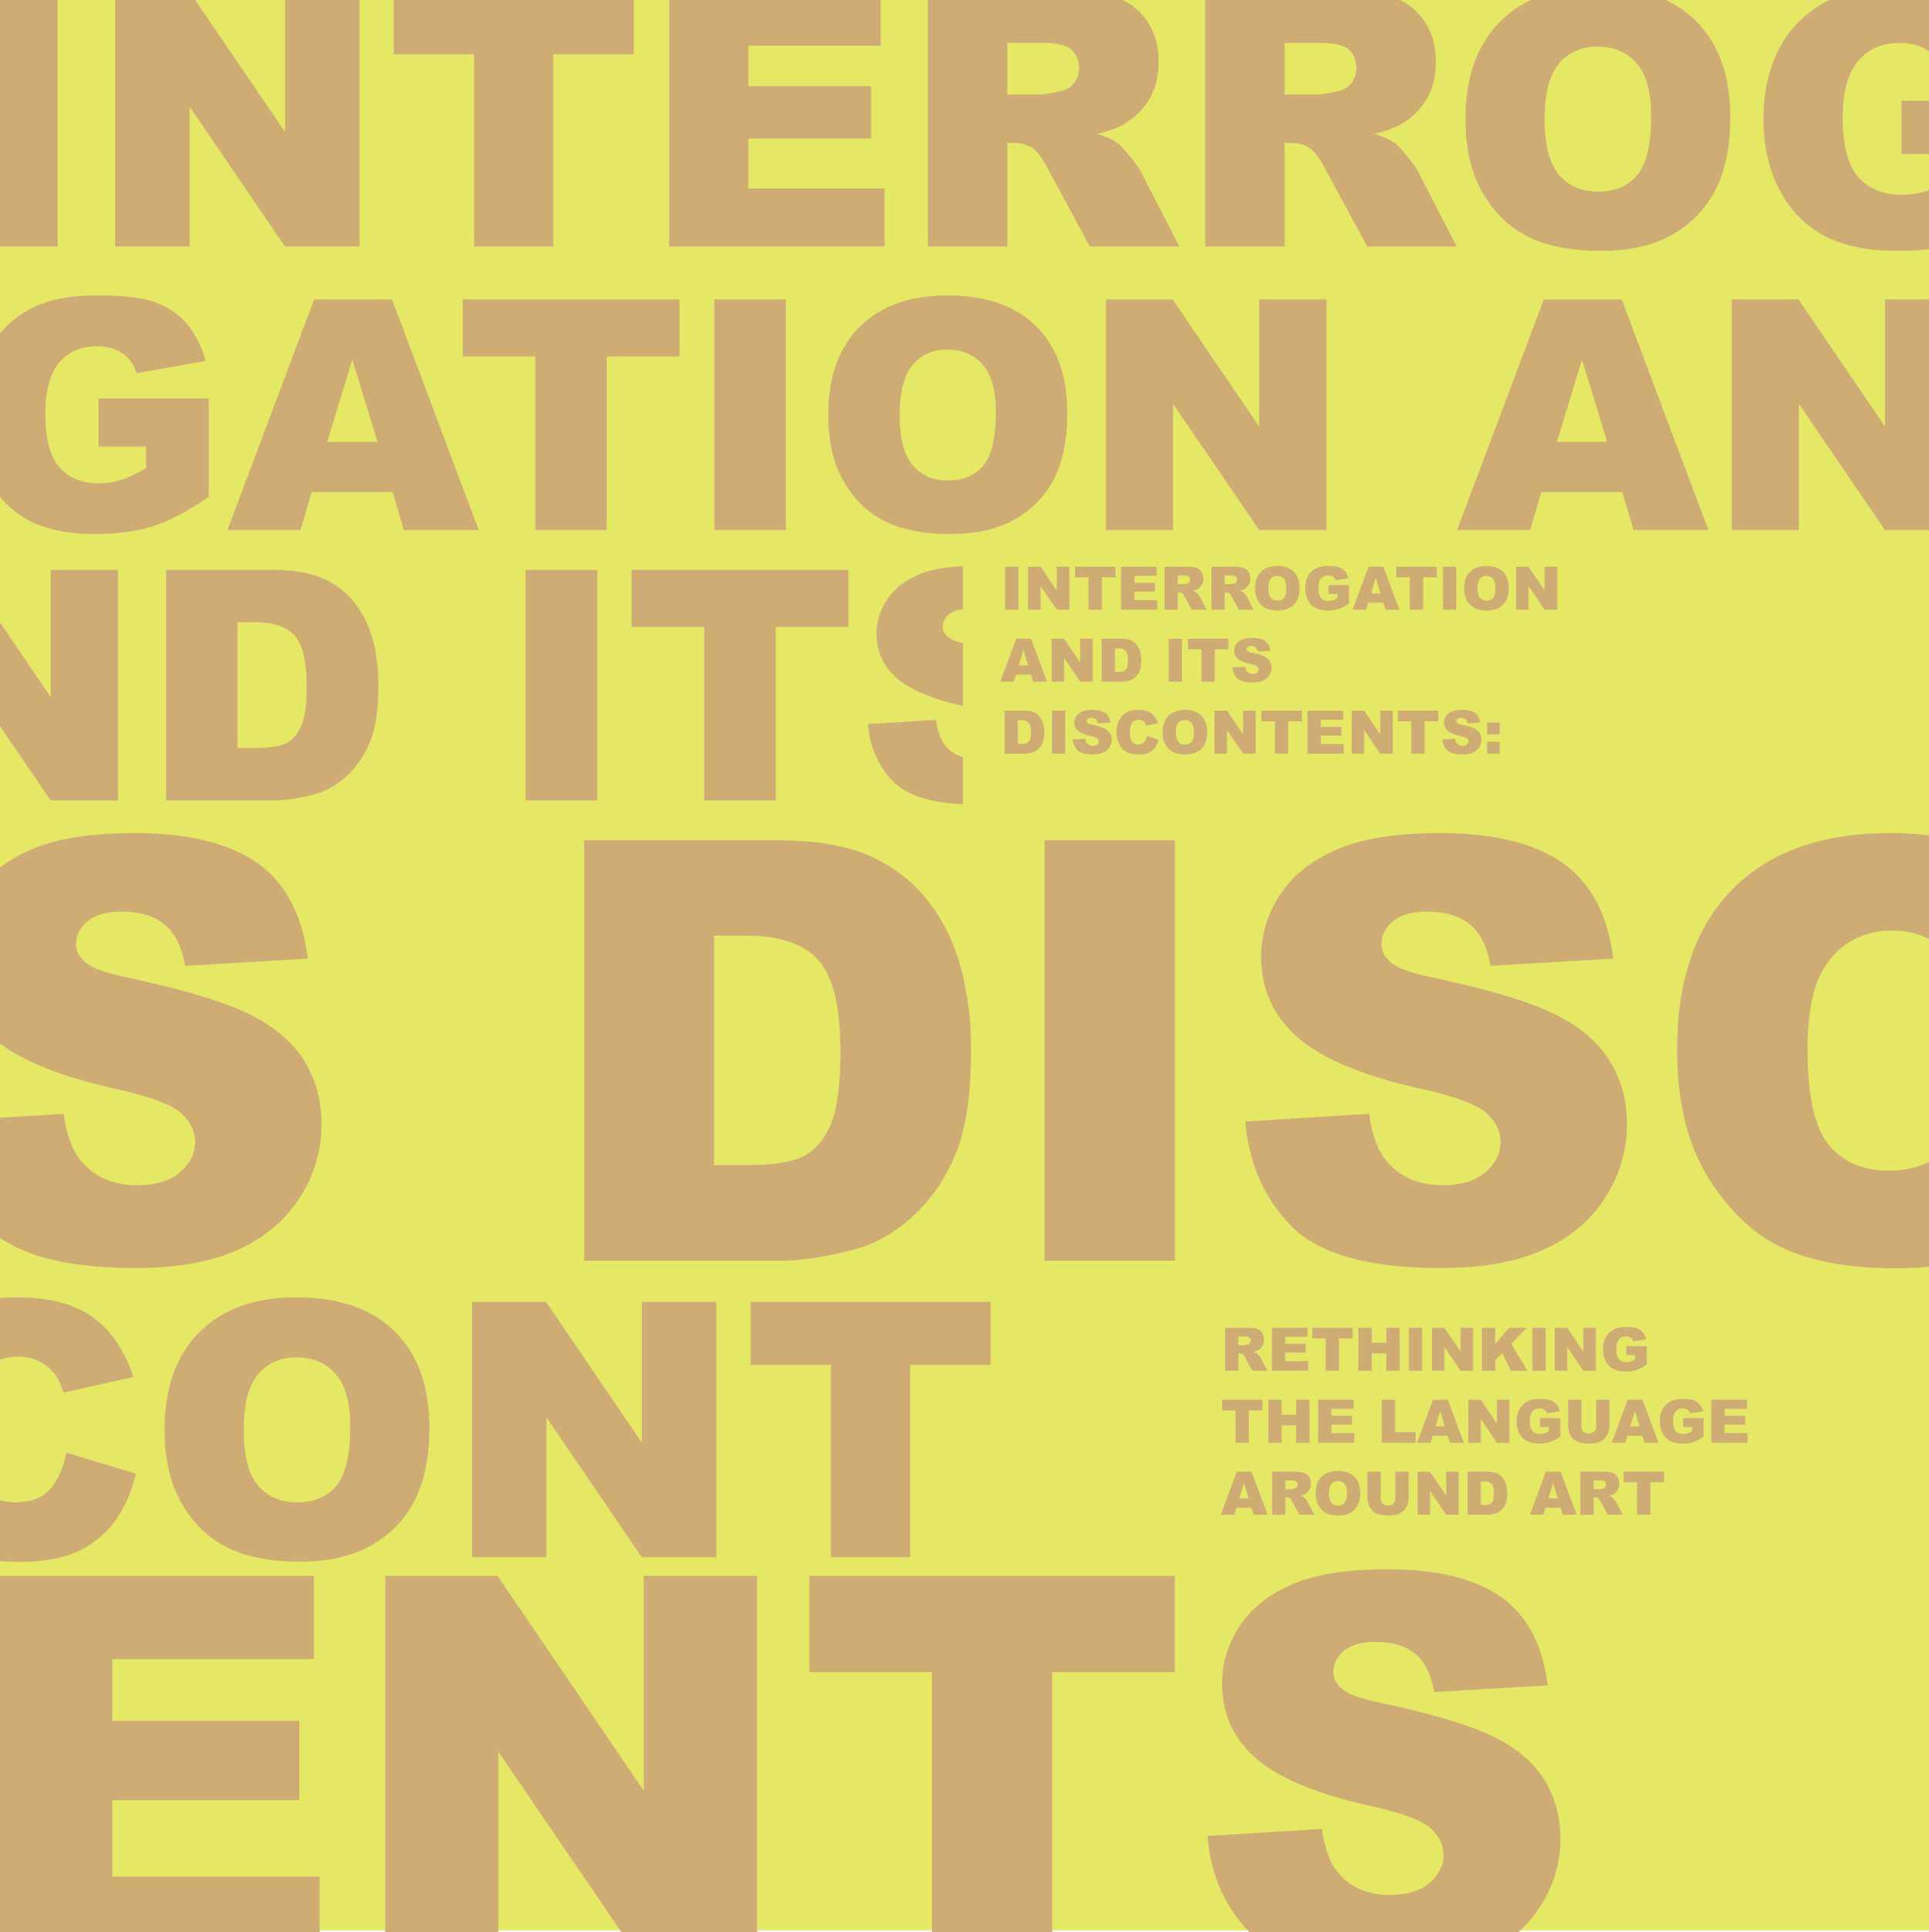 Large, jumbled beige text in all capital letters on an acid green background reads Interrogation and its Discontents. In smaller beige text interspersed withing the jumbled text, also in all capital letters, this phrase is repeated more legibly with the words Rethinking the Language Around Art beneath it.